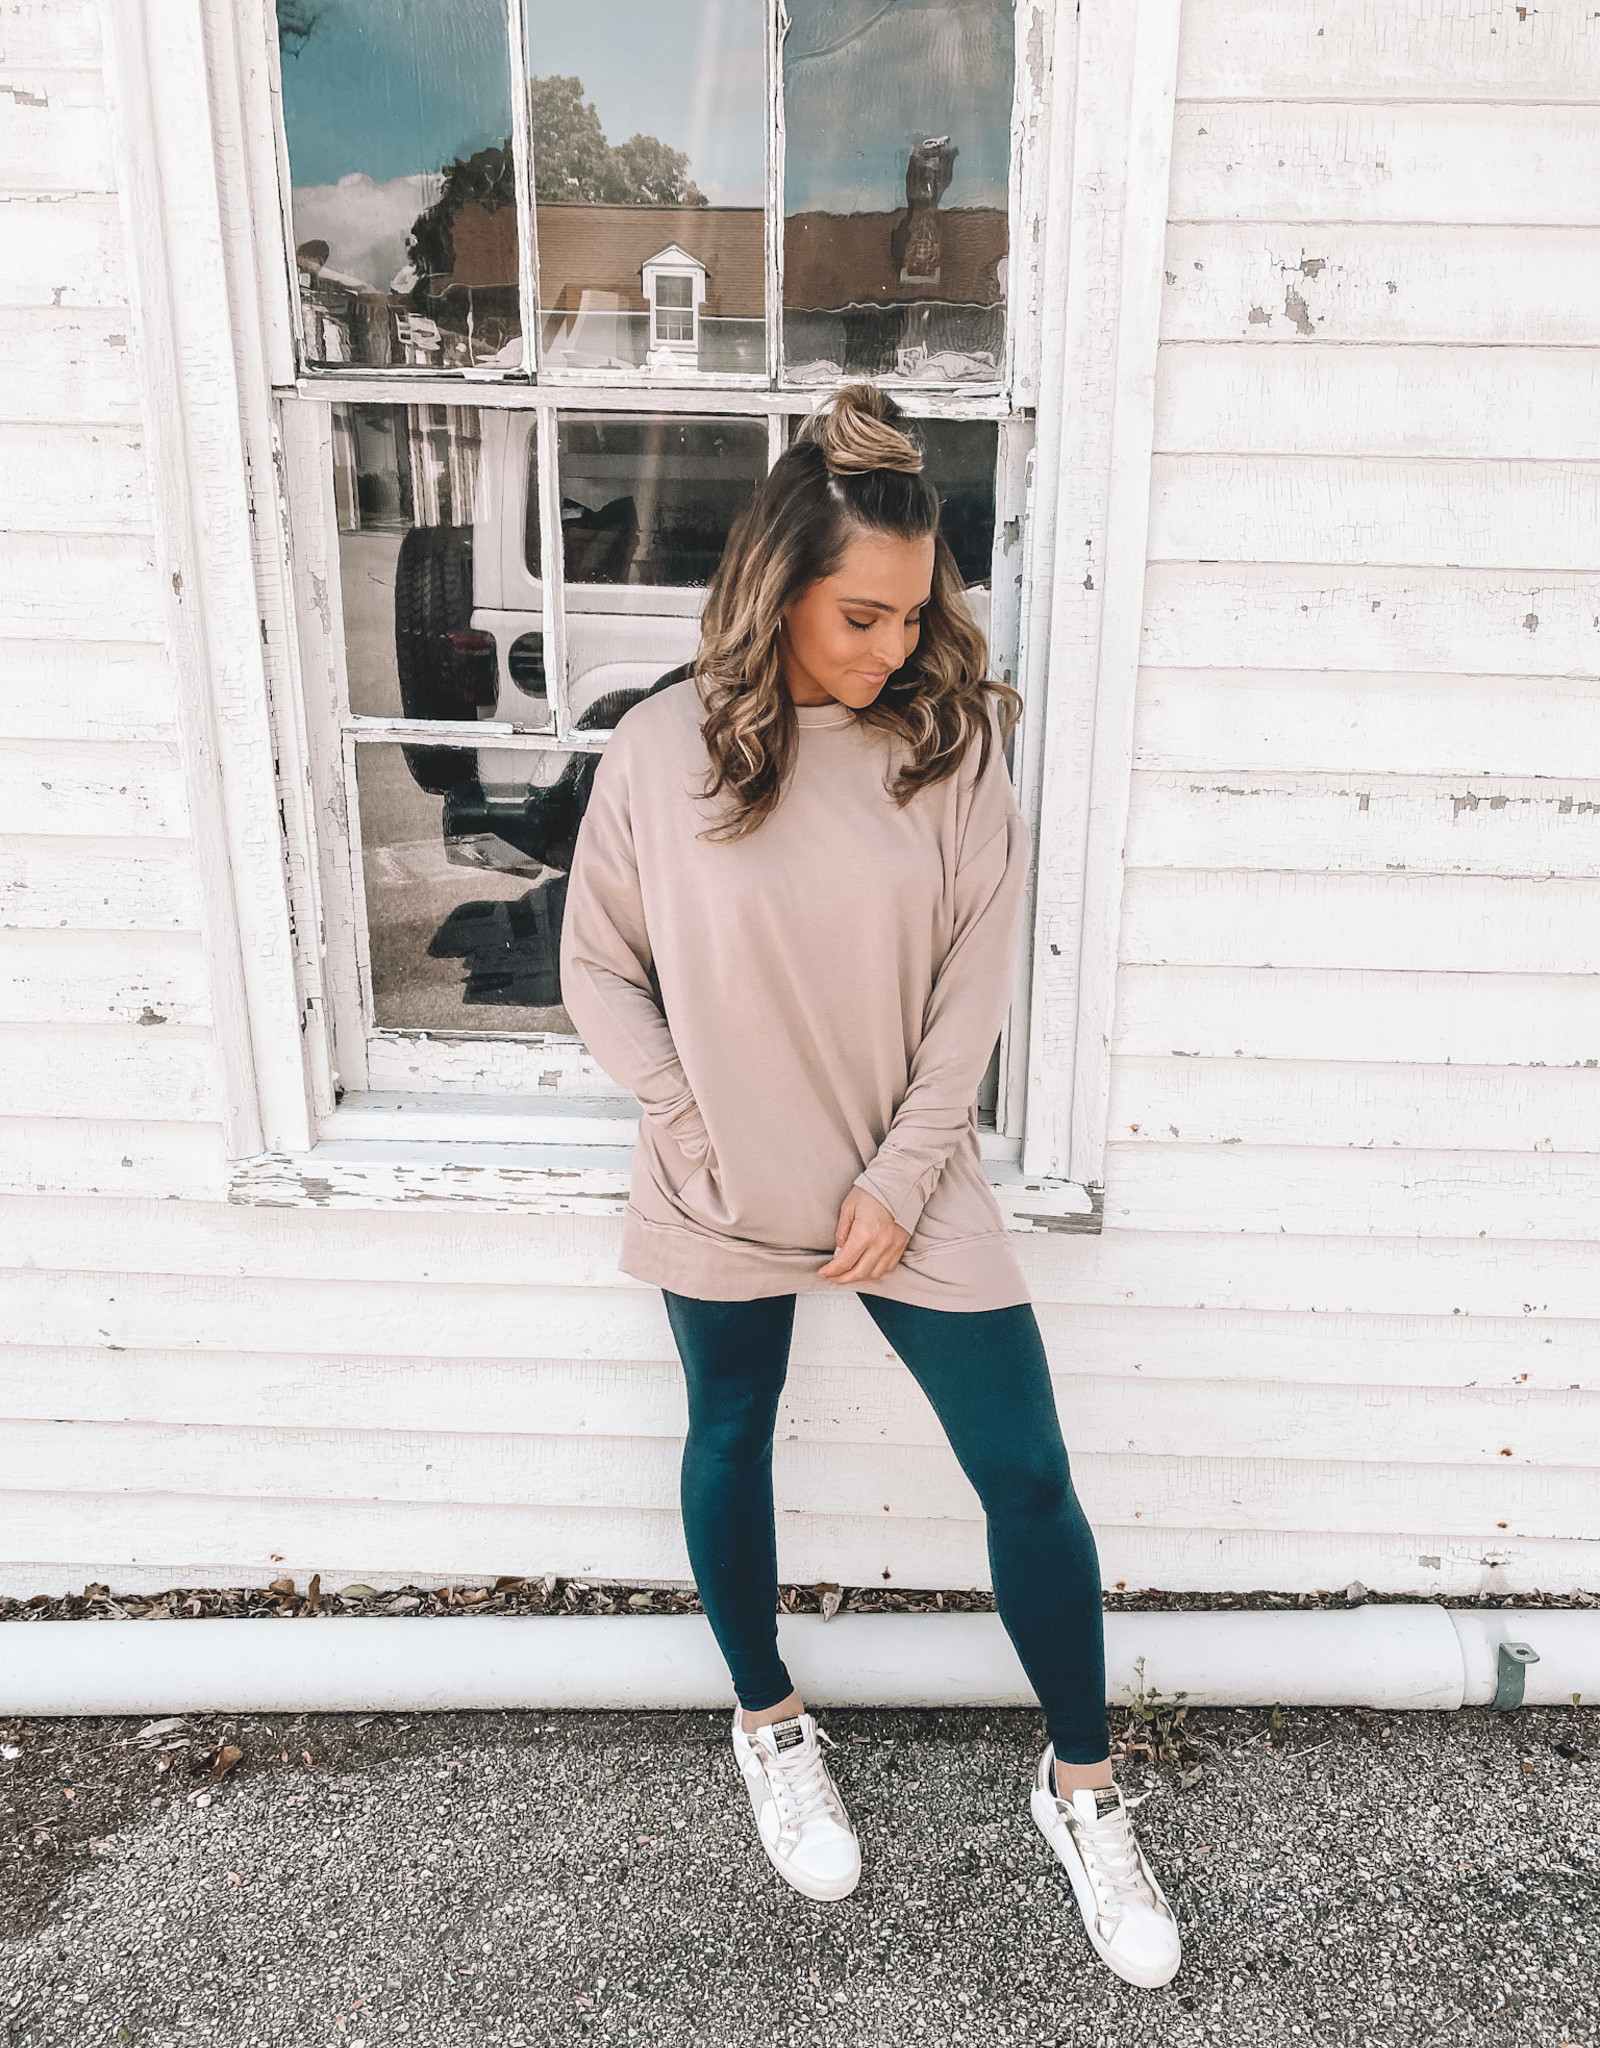 Laura Slouch Top